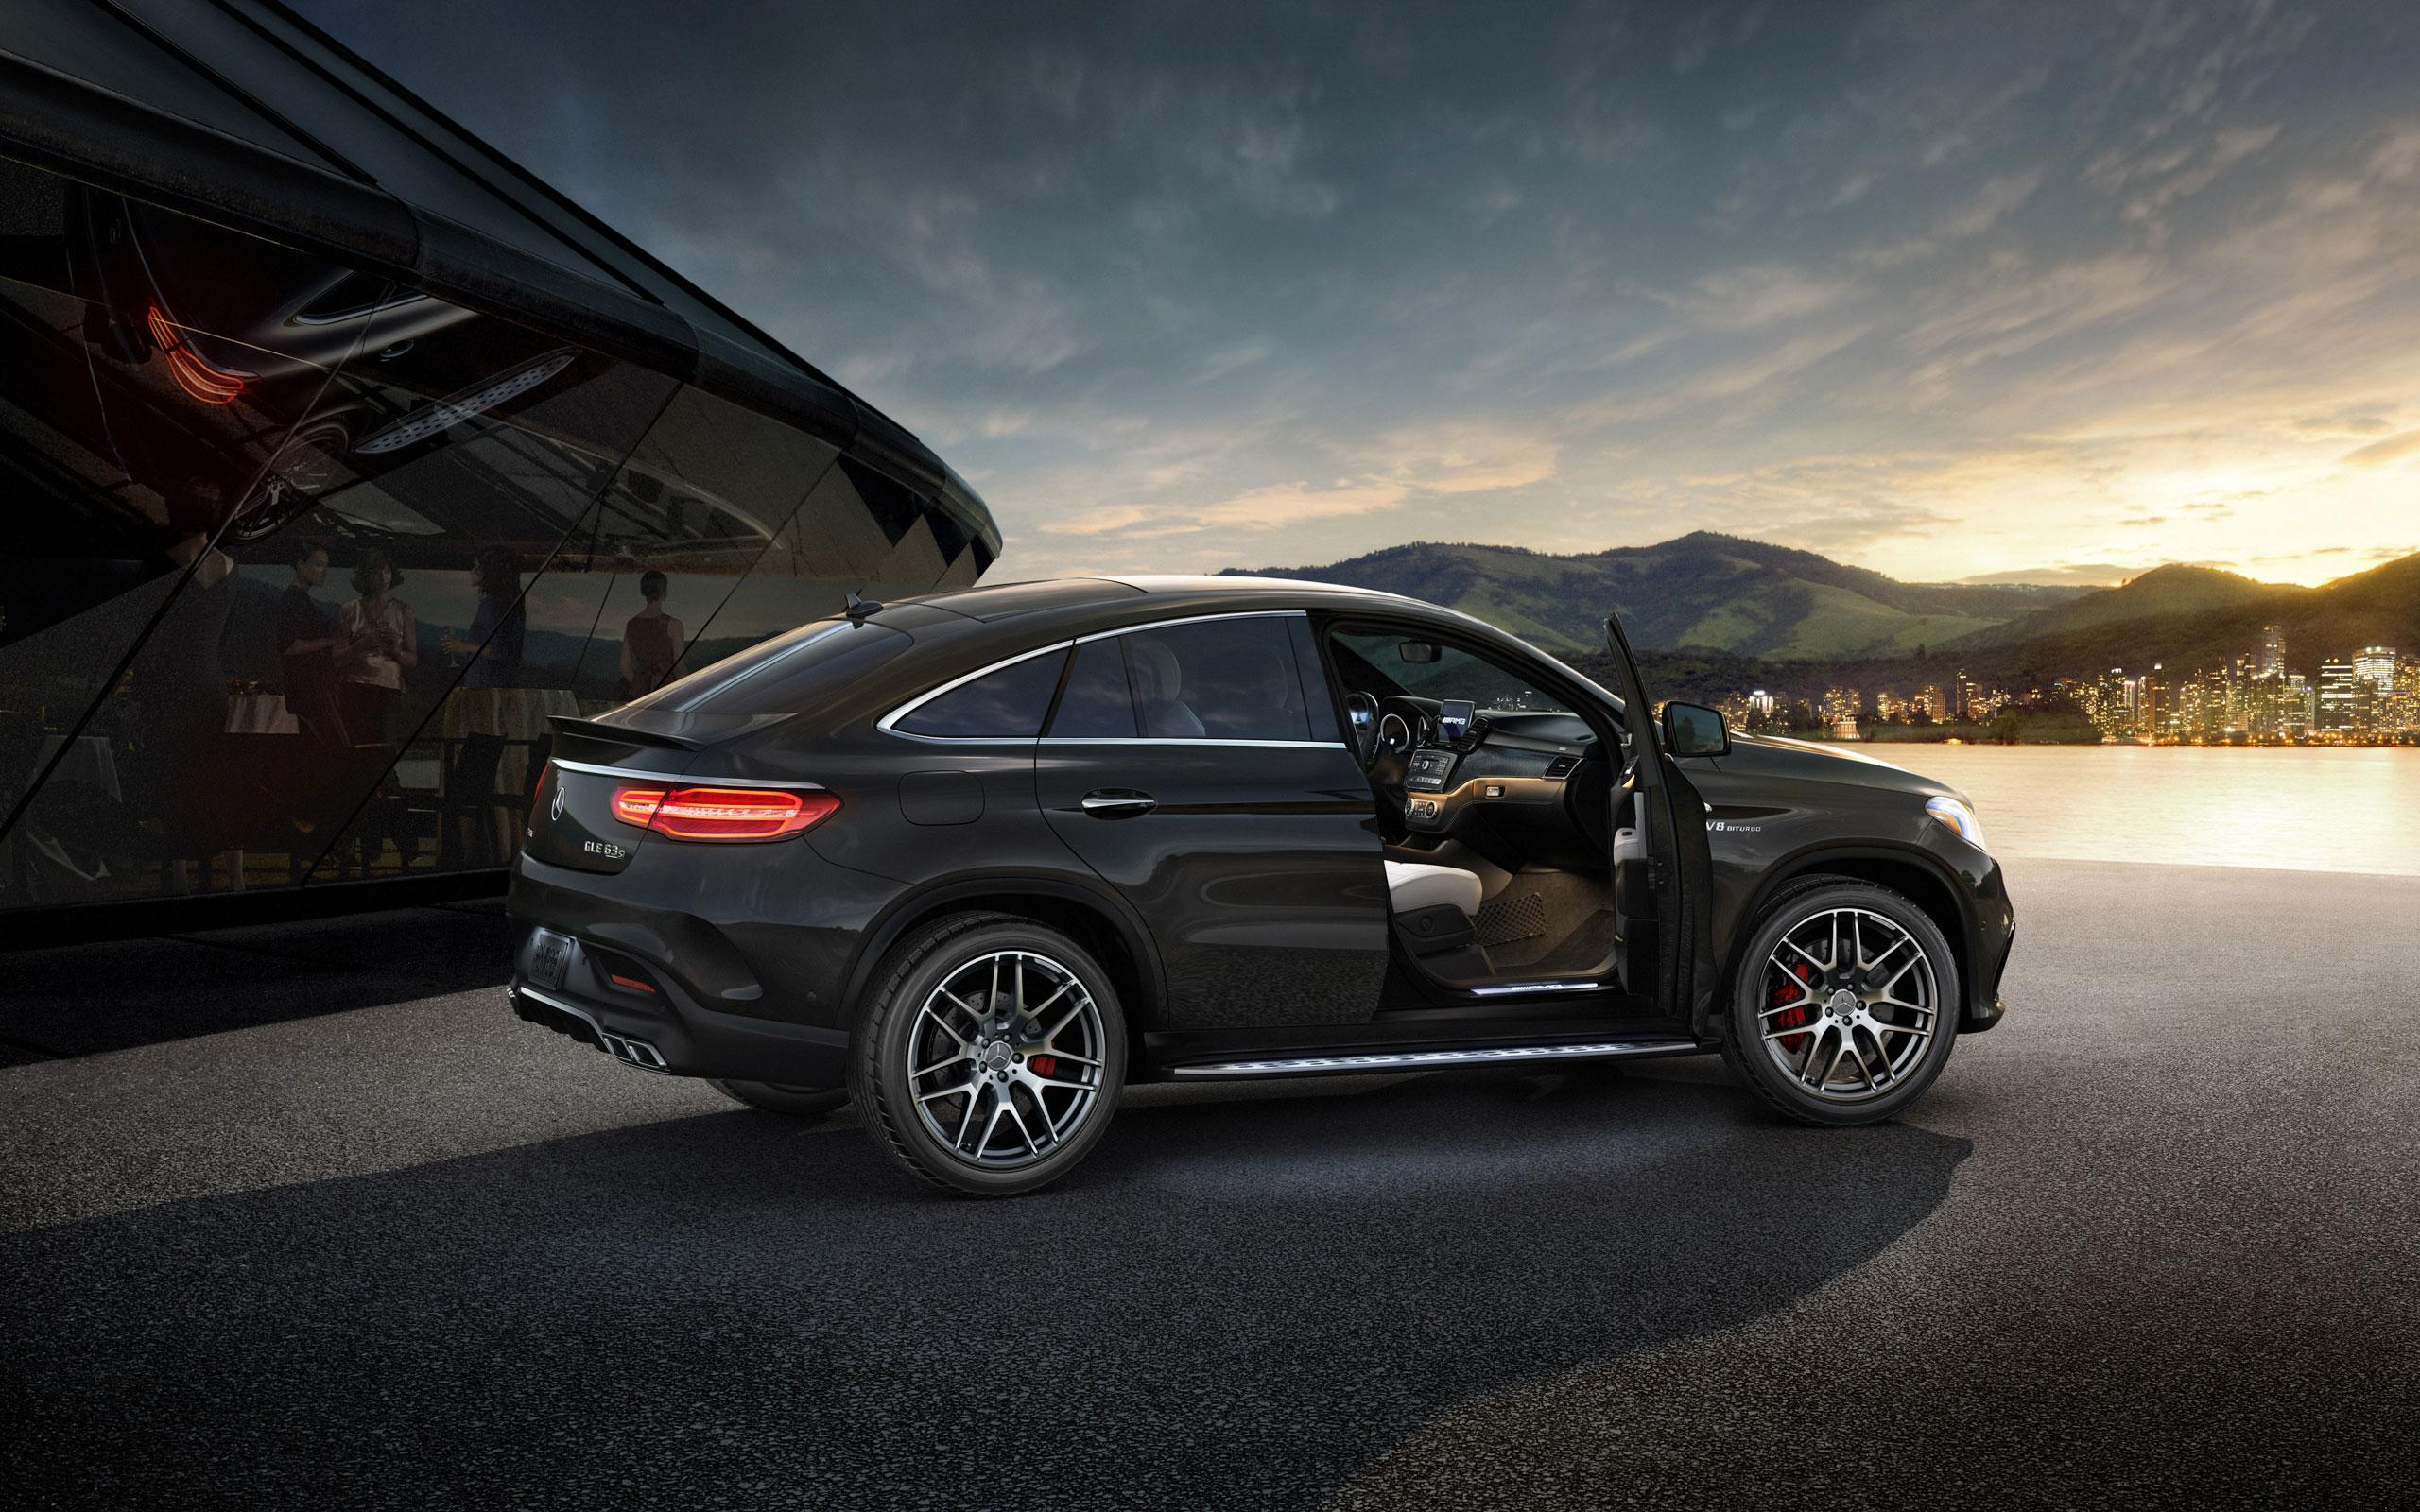 Mercedes GLE Wallpapers - Wallpaper Cave